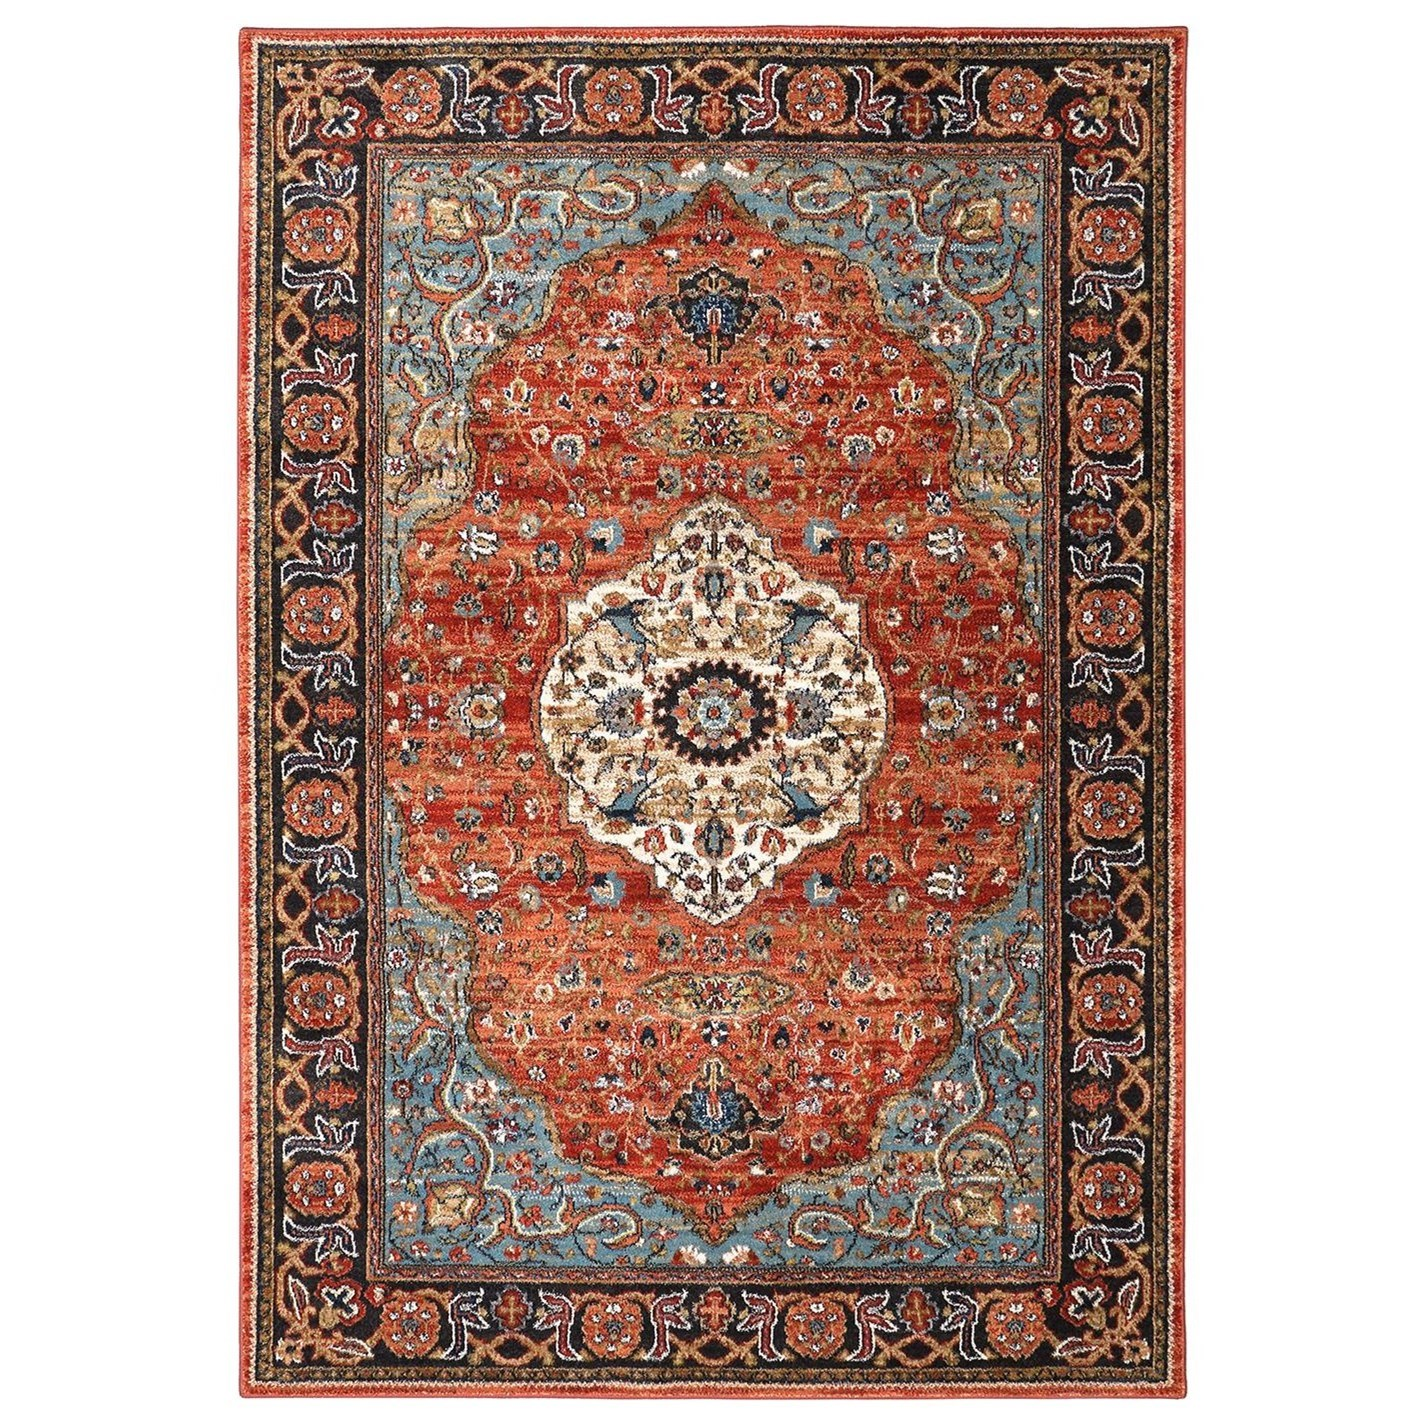 Spice Market 9'6x12'11 Petra Multi Rug by Karastan Rugs at Darvin Furniture